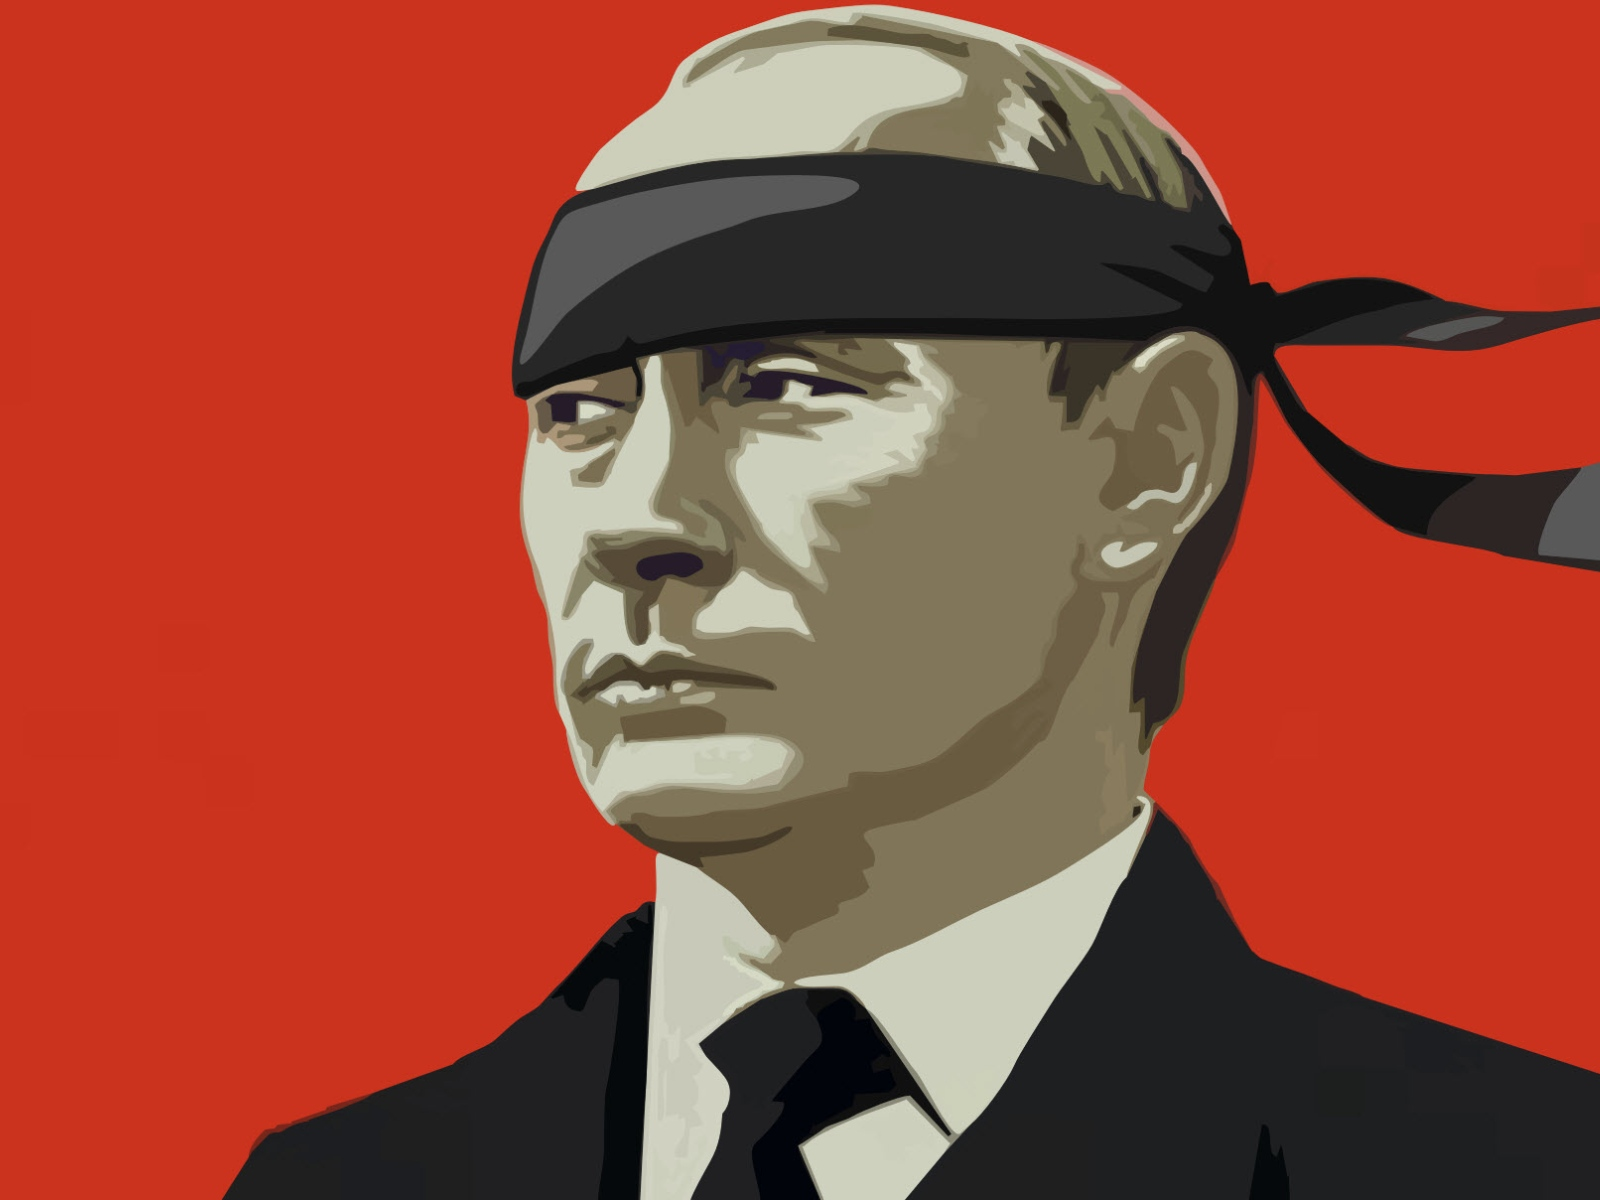 Wallpaper Vladimir Putin Humor President Vector Graphics